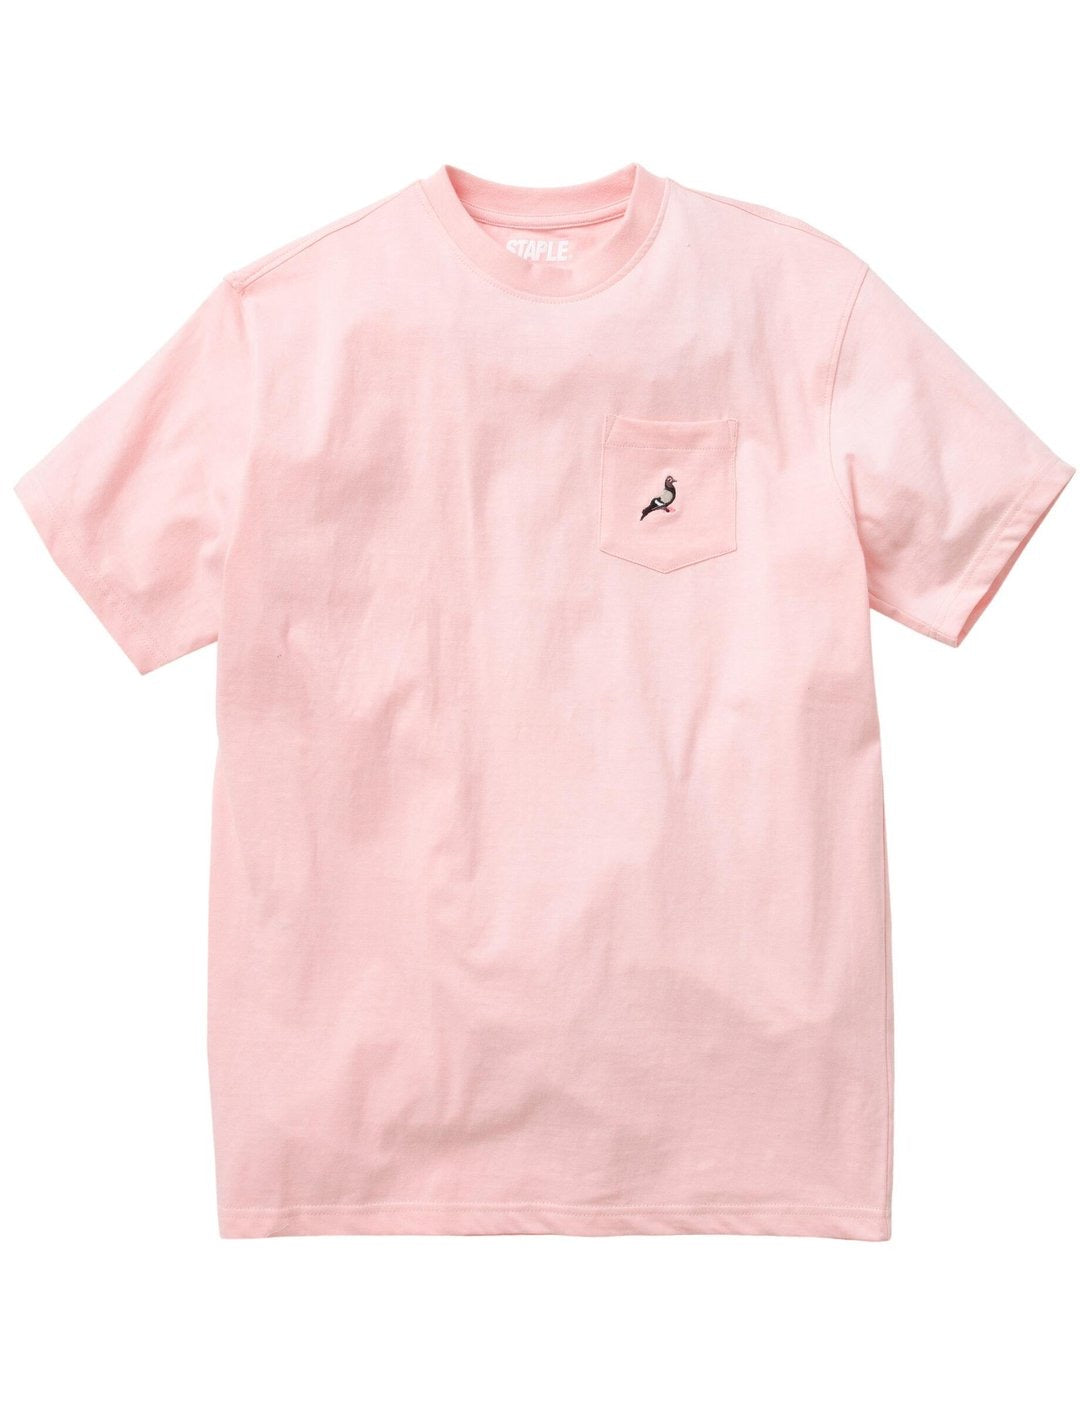 Staple Pigeon Garment Washed Pocket Tee - Pink